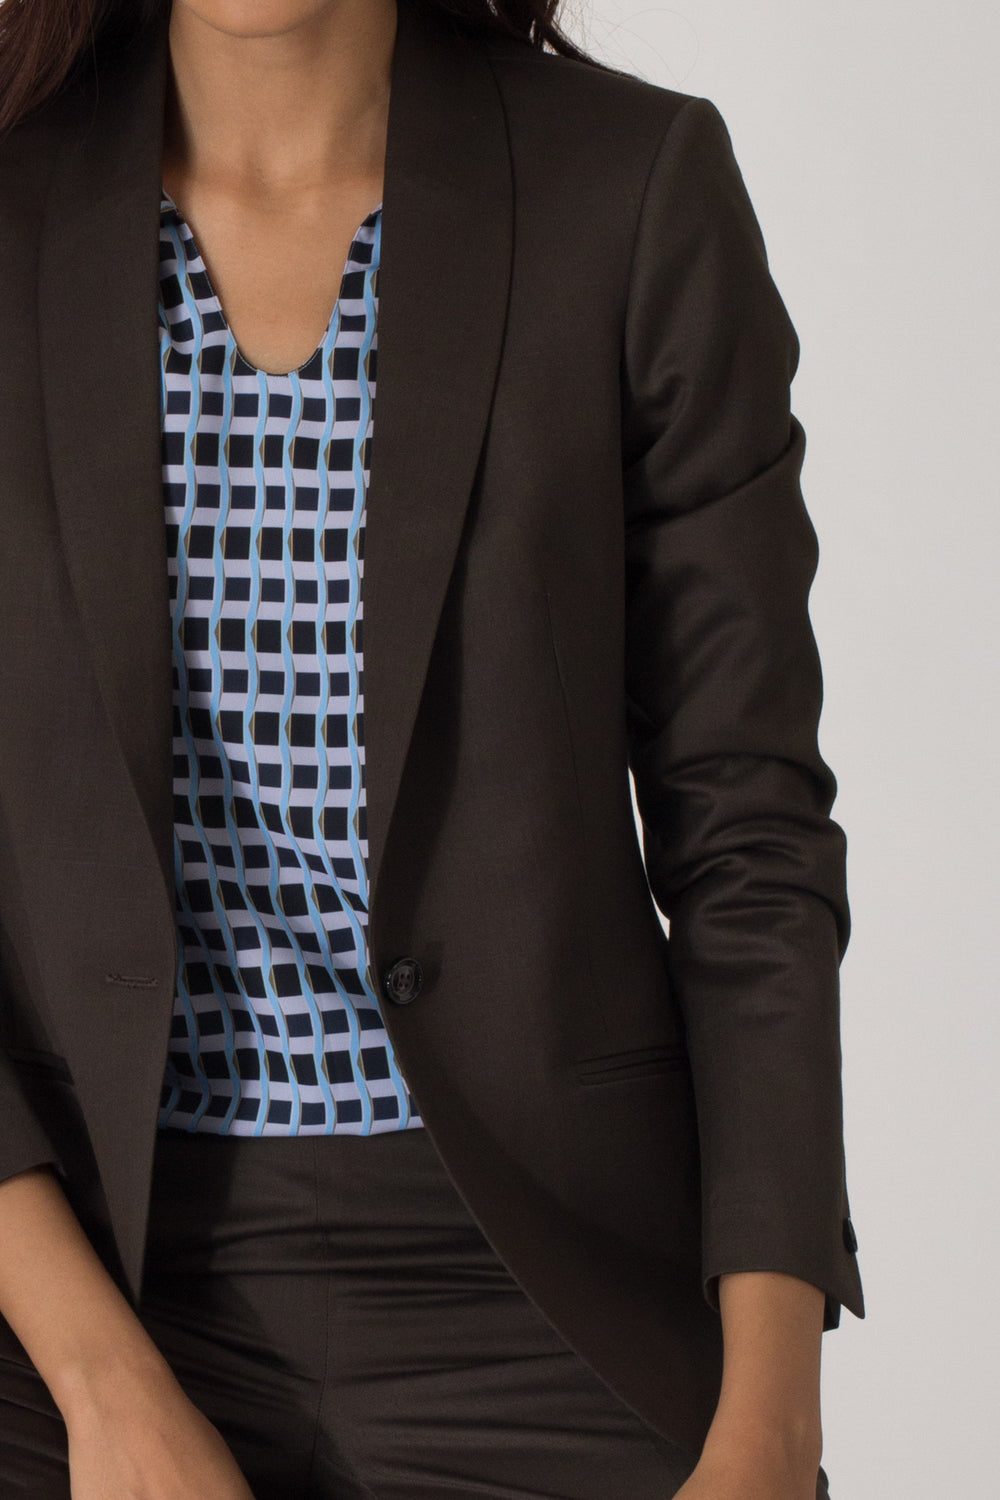 Dark Green Formal Blazer Suit for Working Women. Shop for stylish office suits and professional looks at www.intermod.in